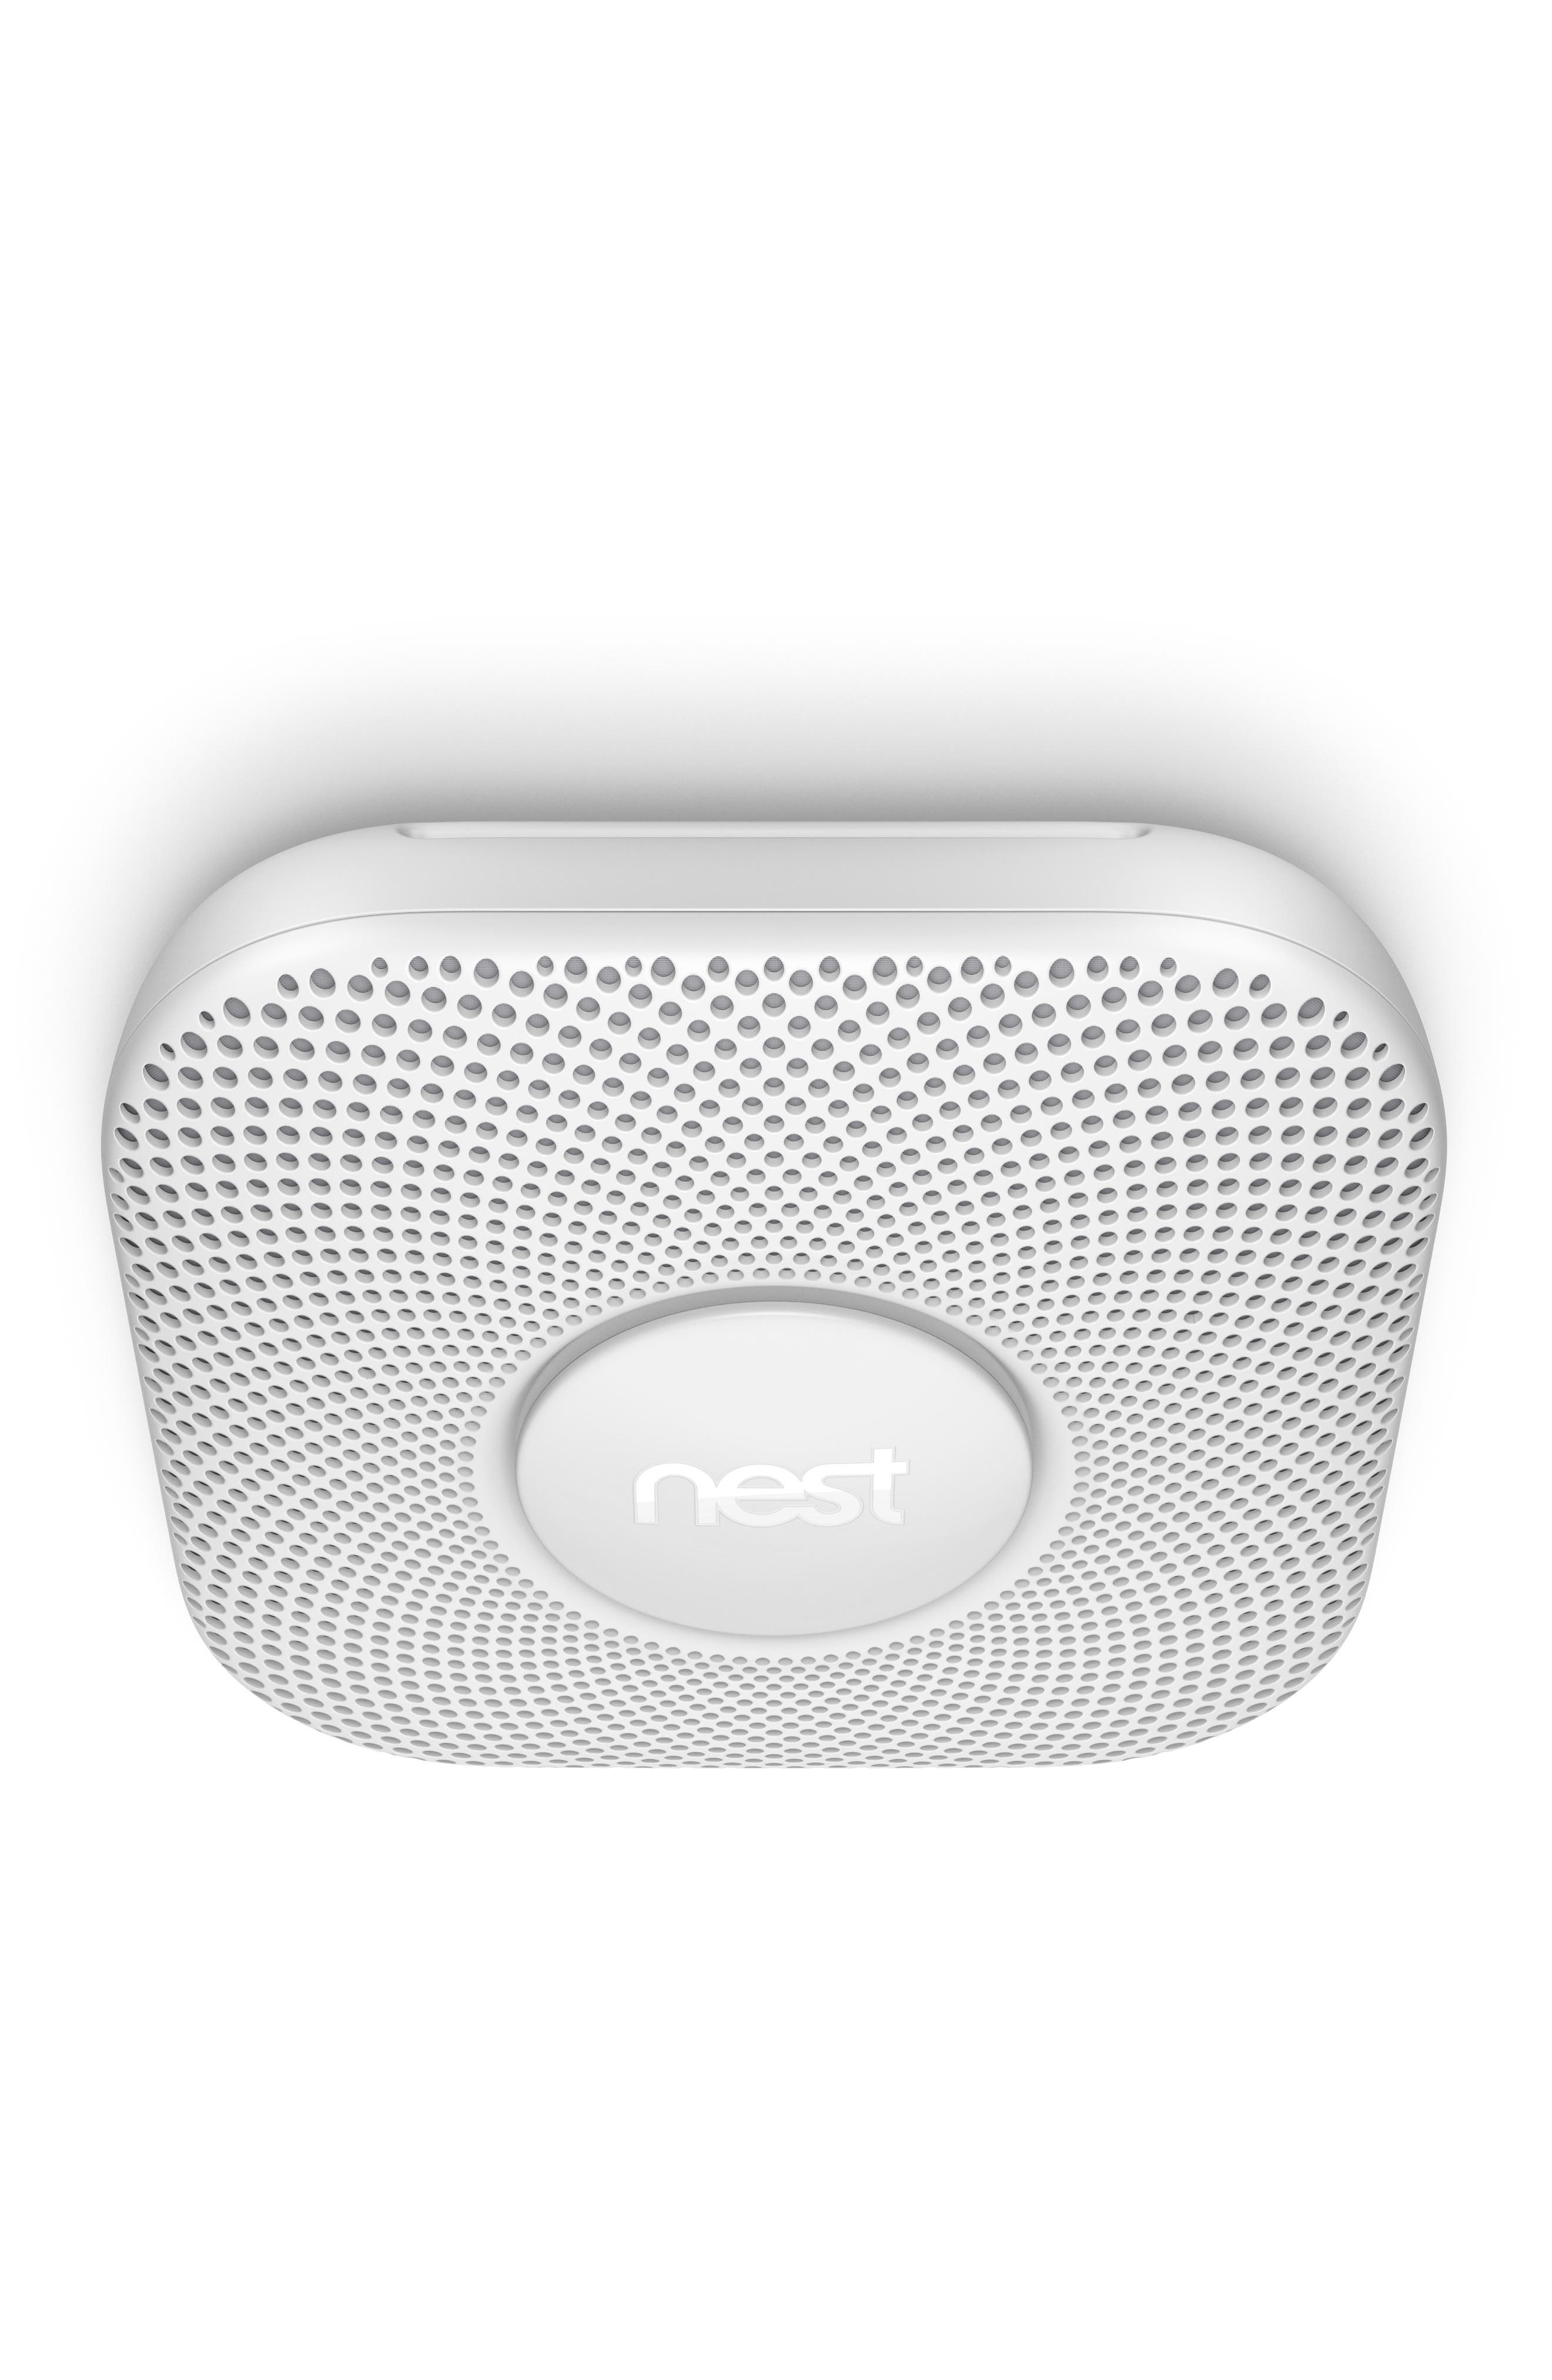 NEST, Protect Smoke & Carbon Monoxide Alarm, Alternate thumbnail 3, color, BATTERY OPERATED